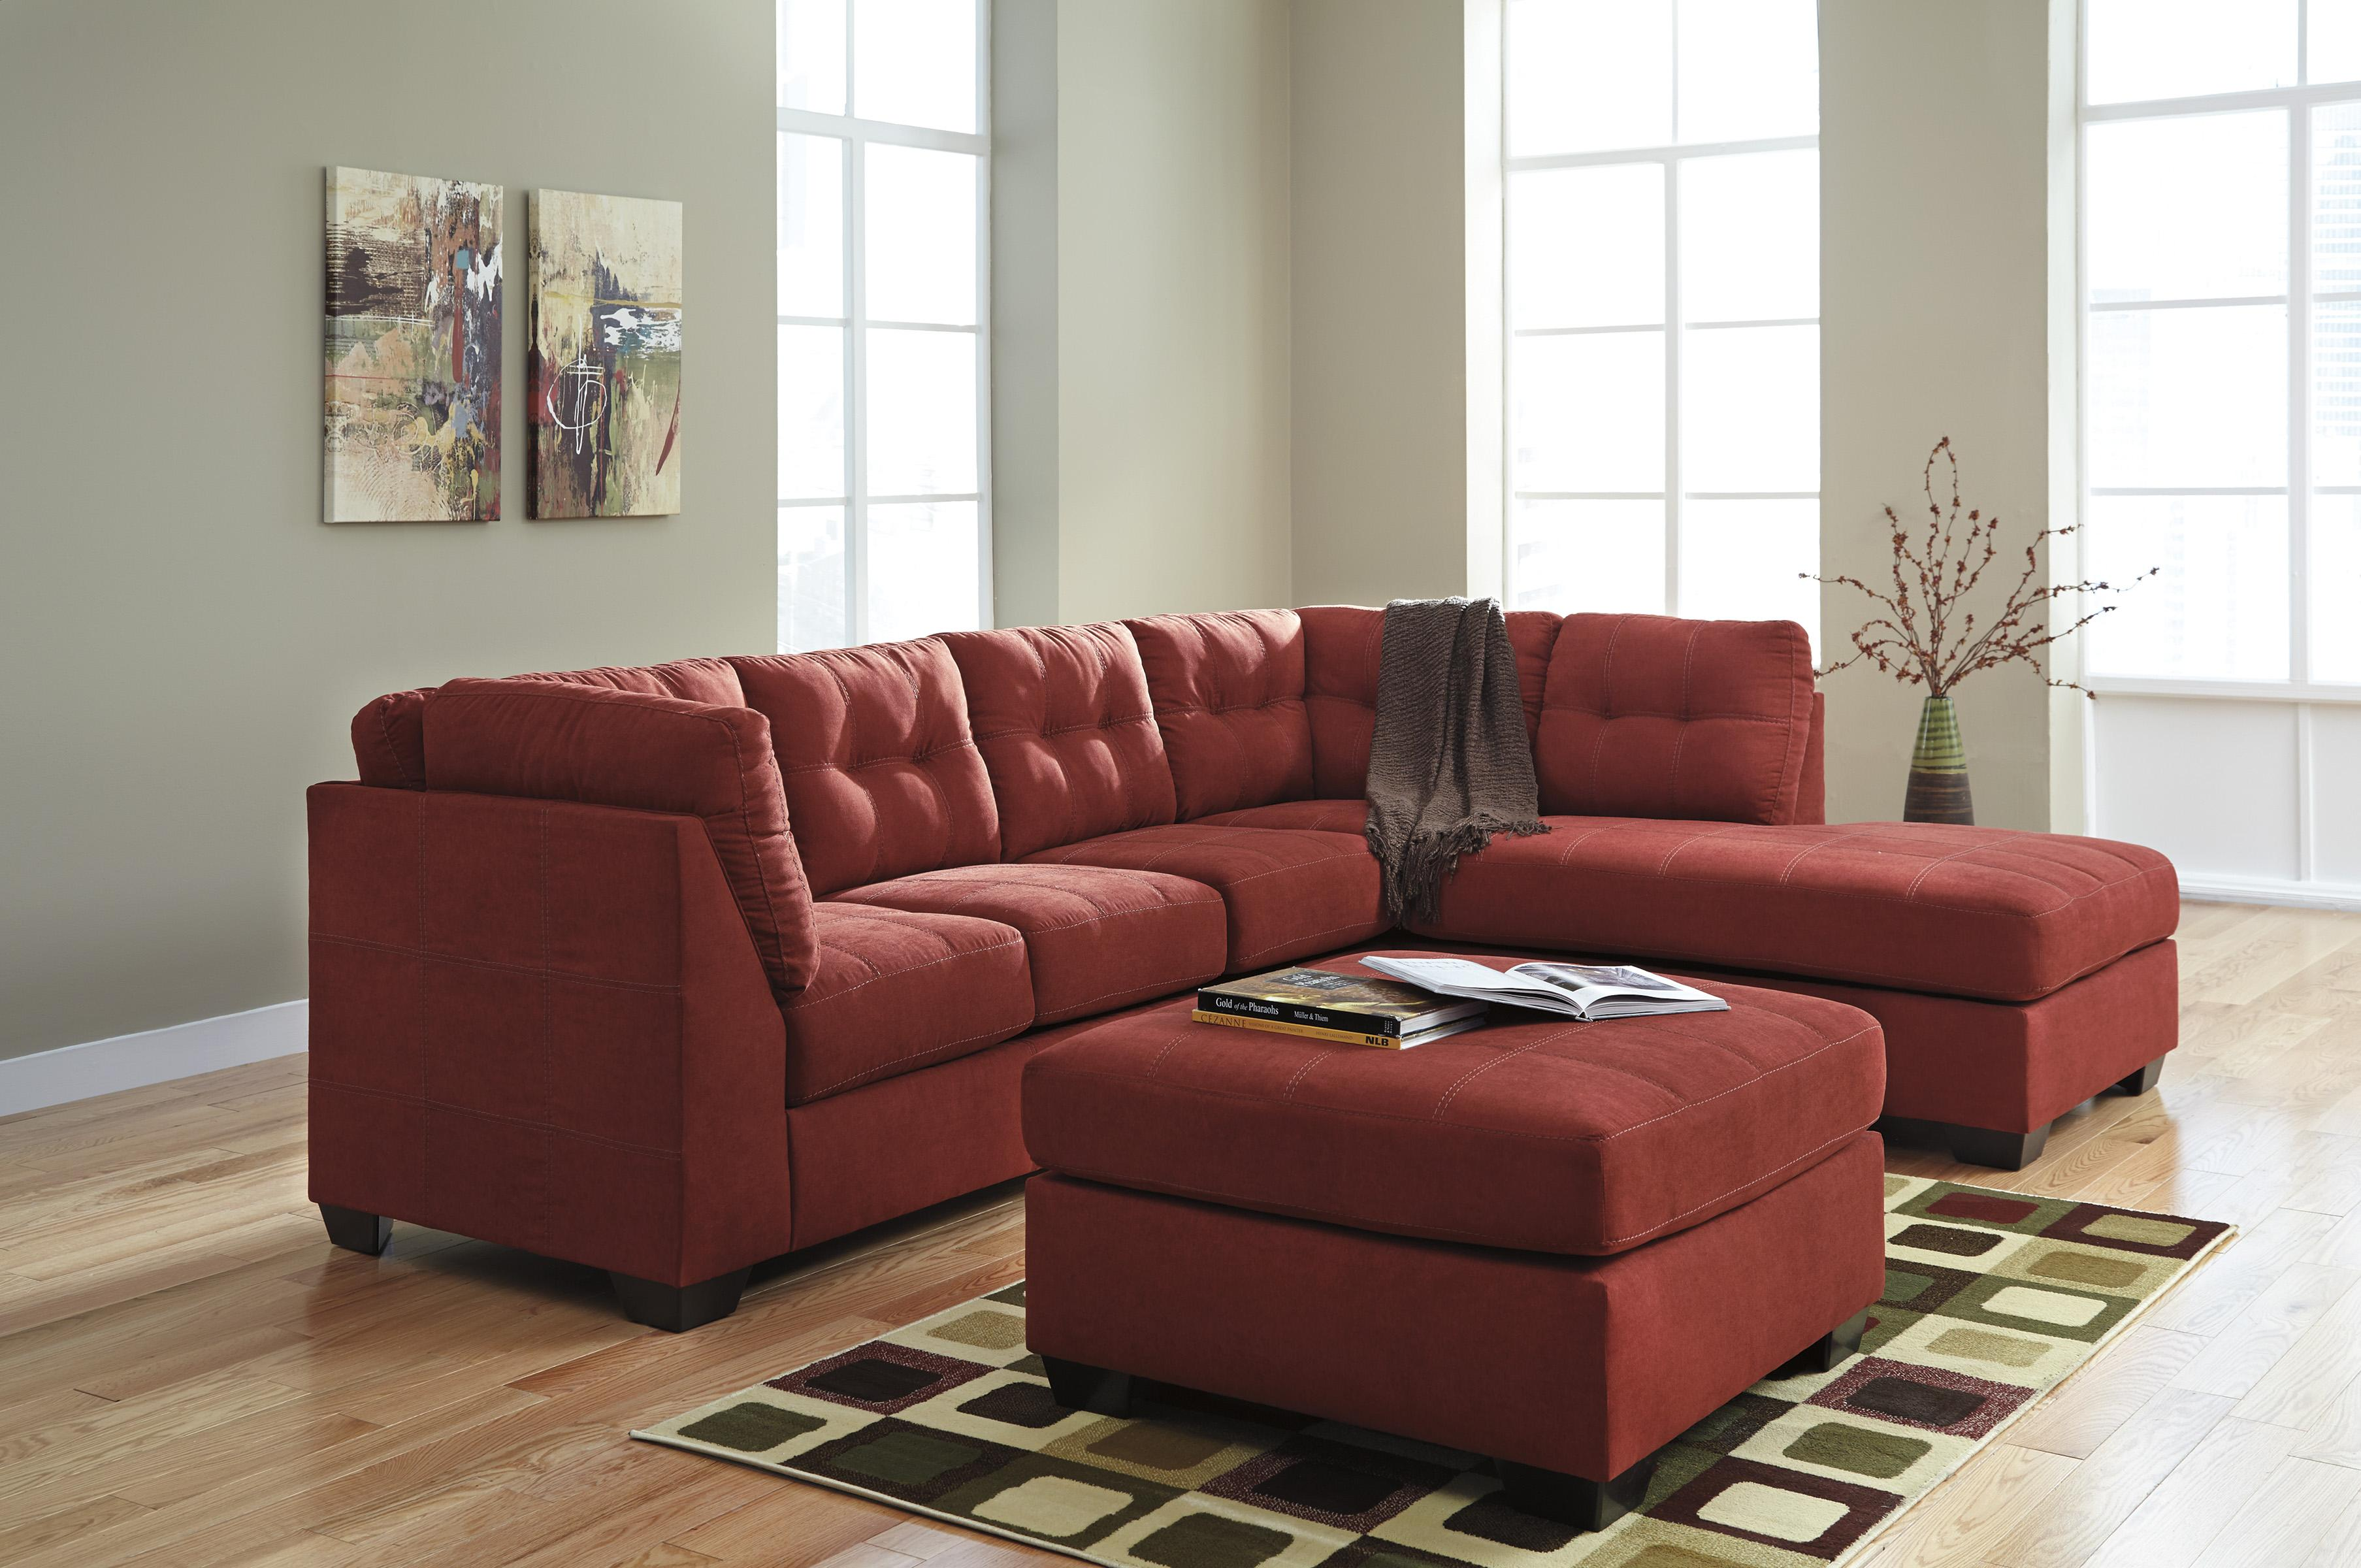 sam moore carson sofa click clack sofas uk two piece sectional with chaise benchcraft masoli